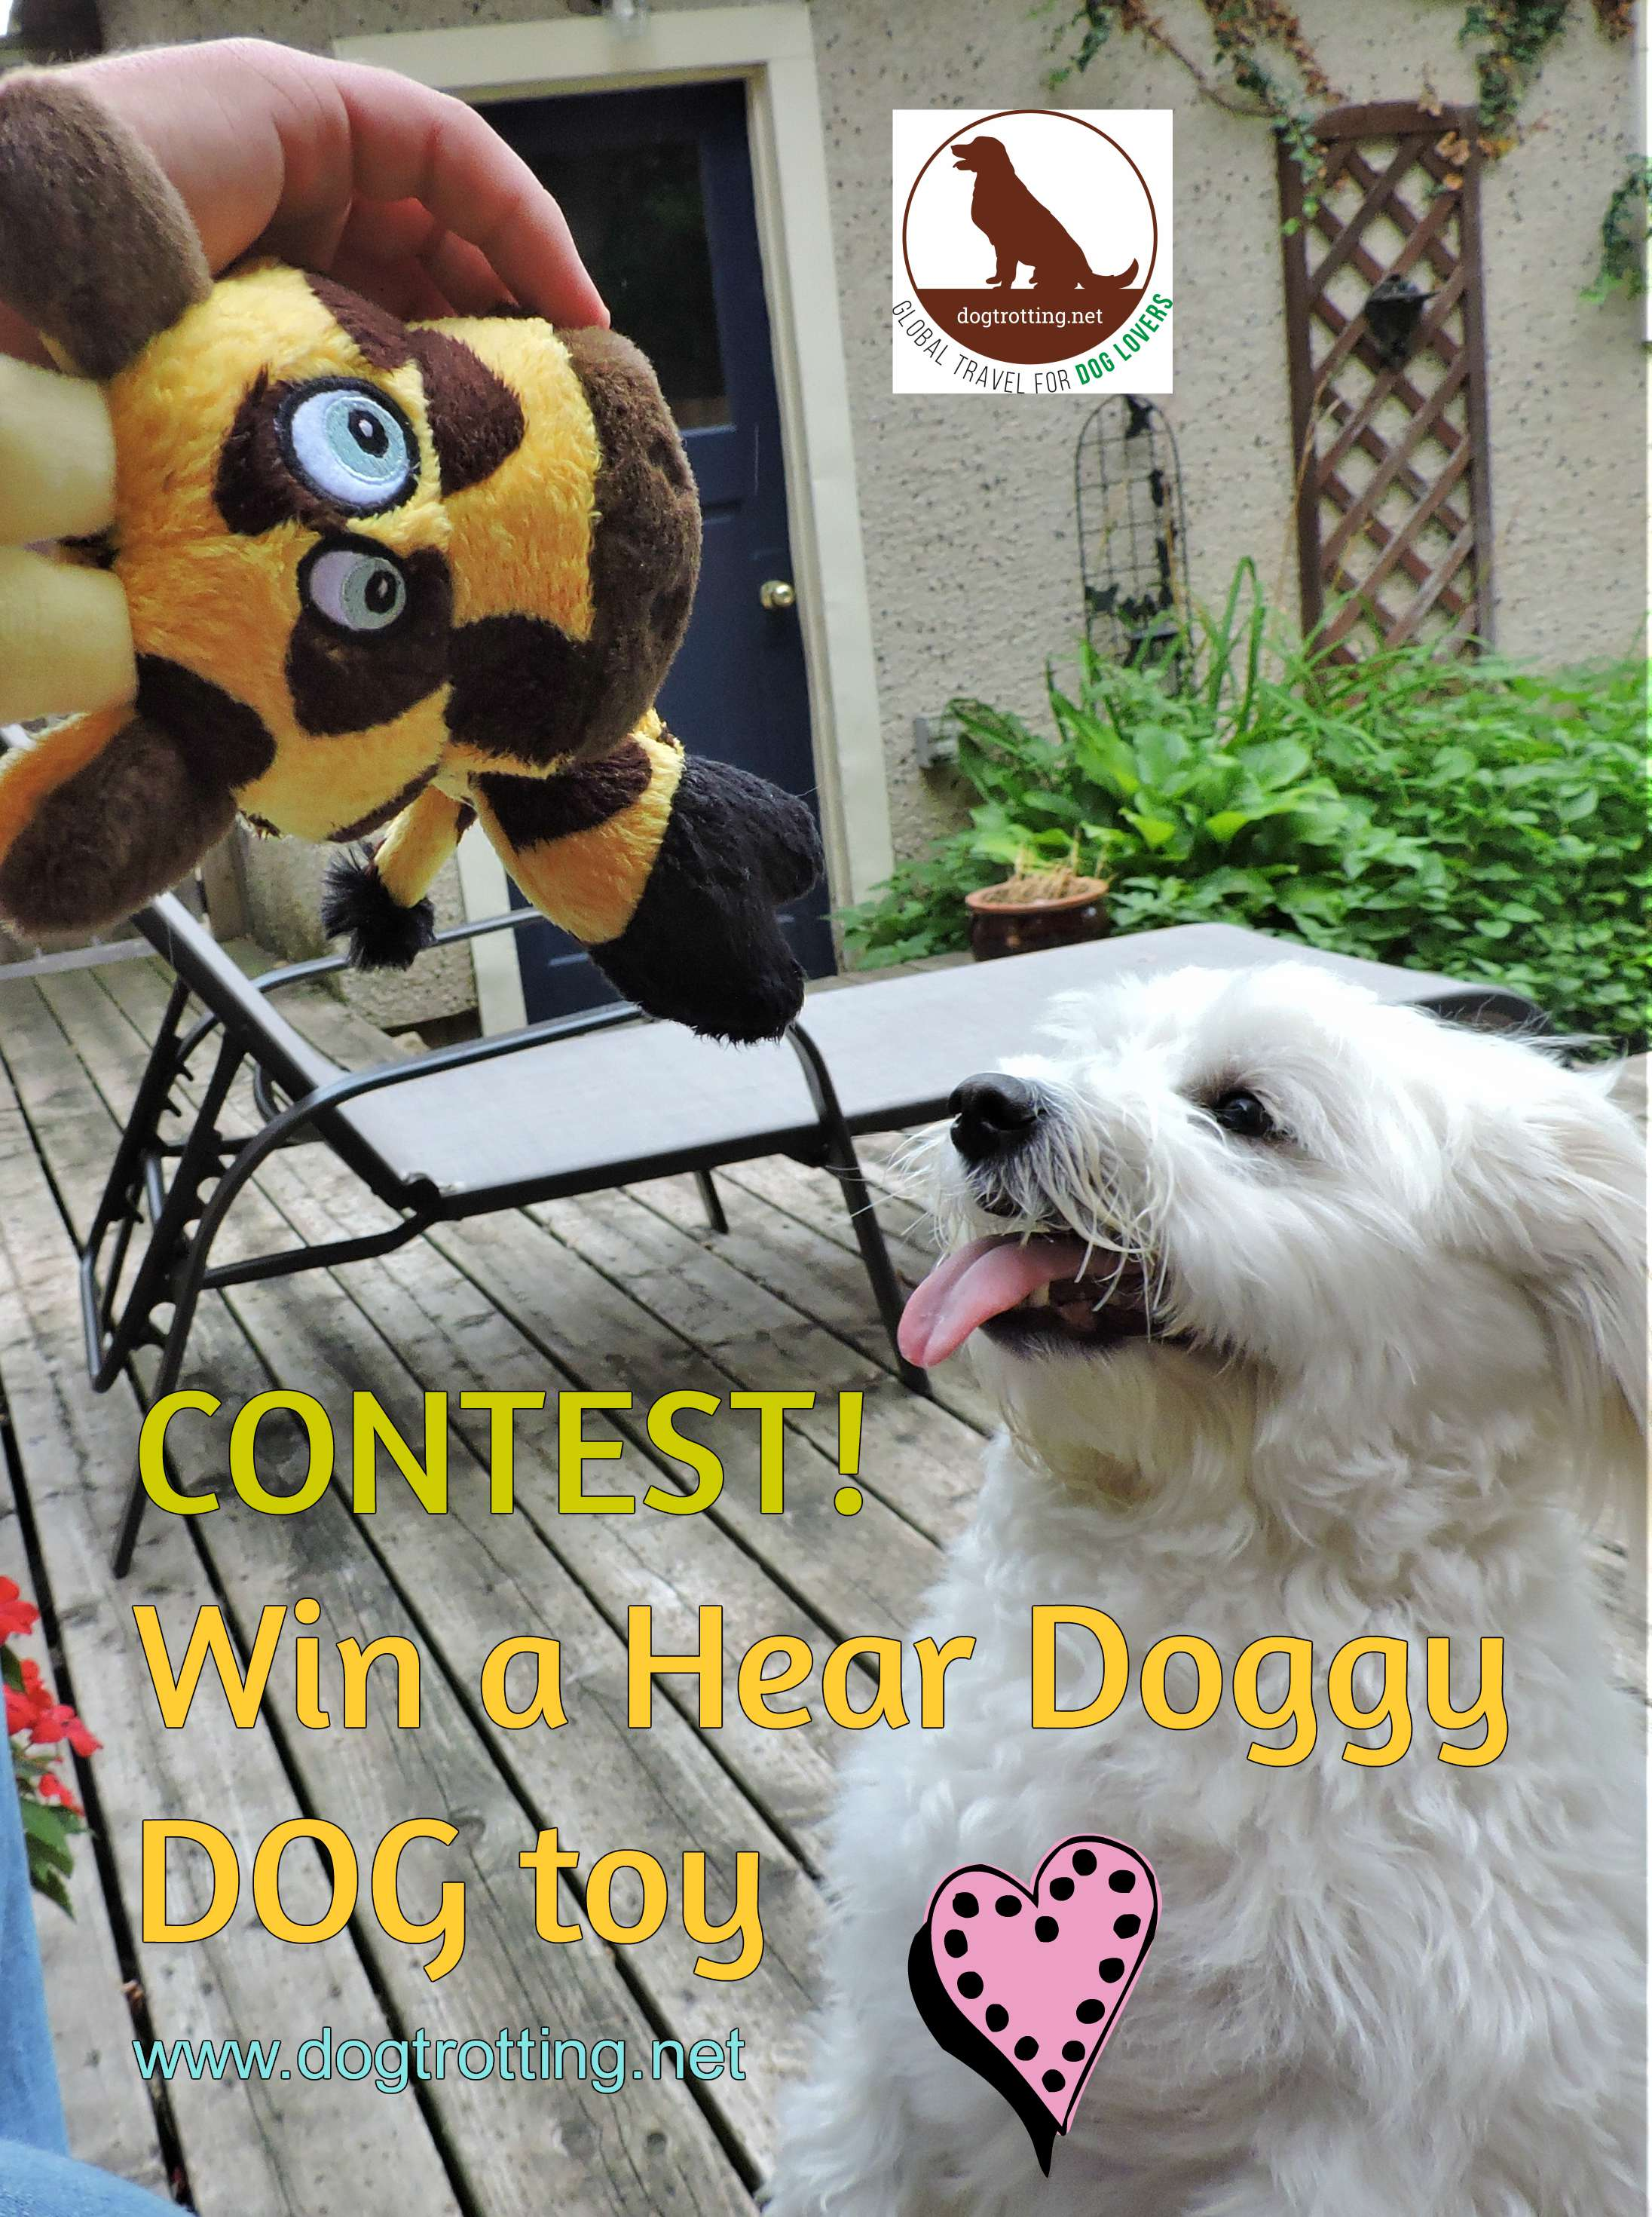 CONTEST! Win a Hear Doggy silent squeaky toy